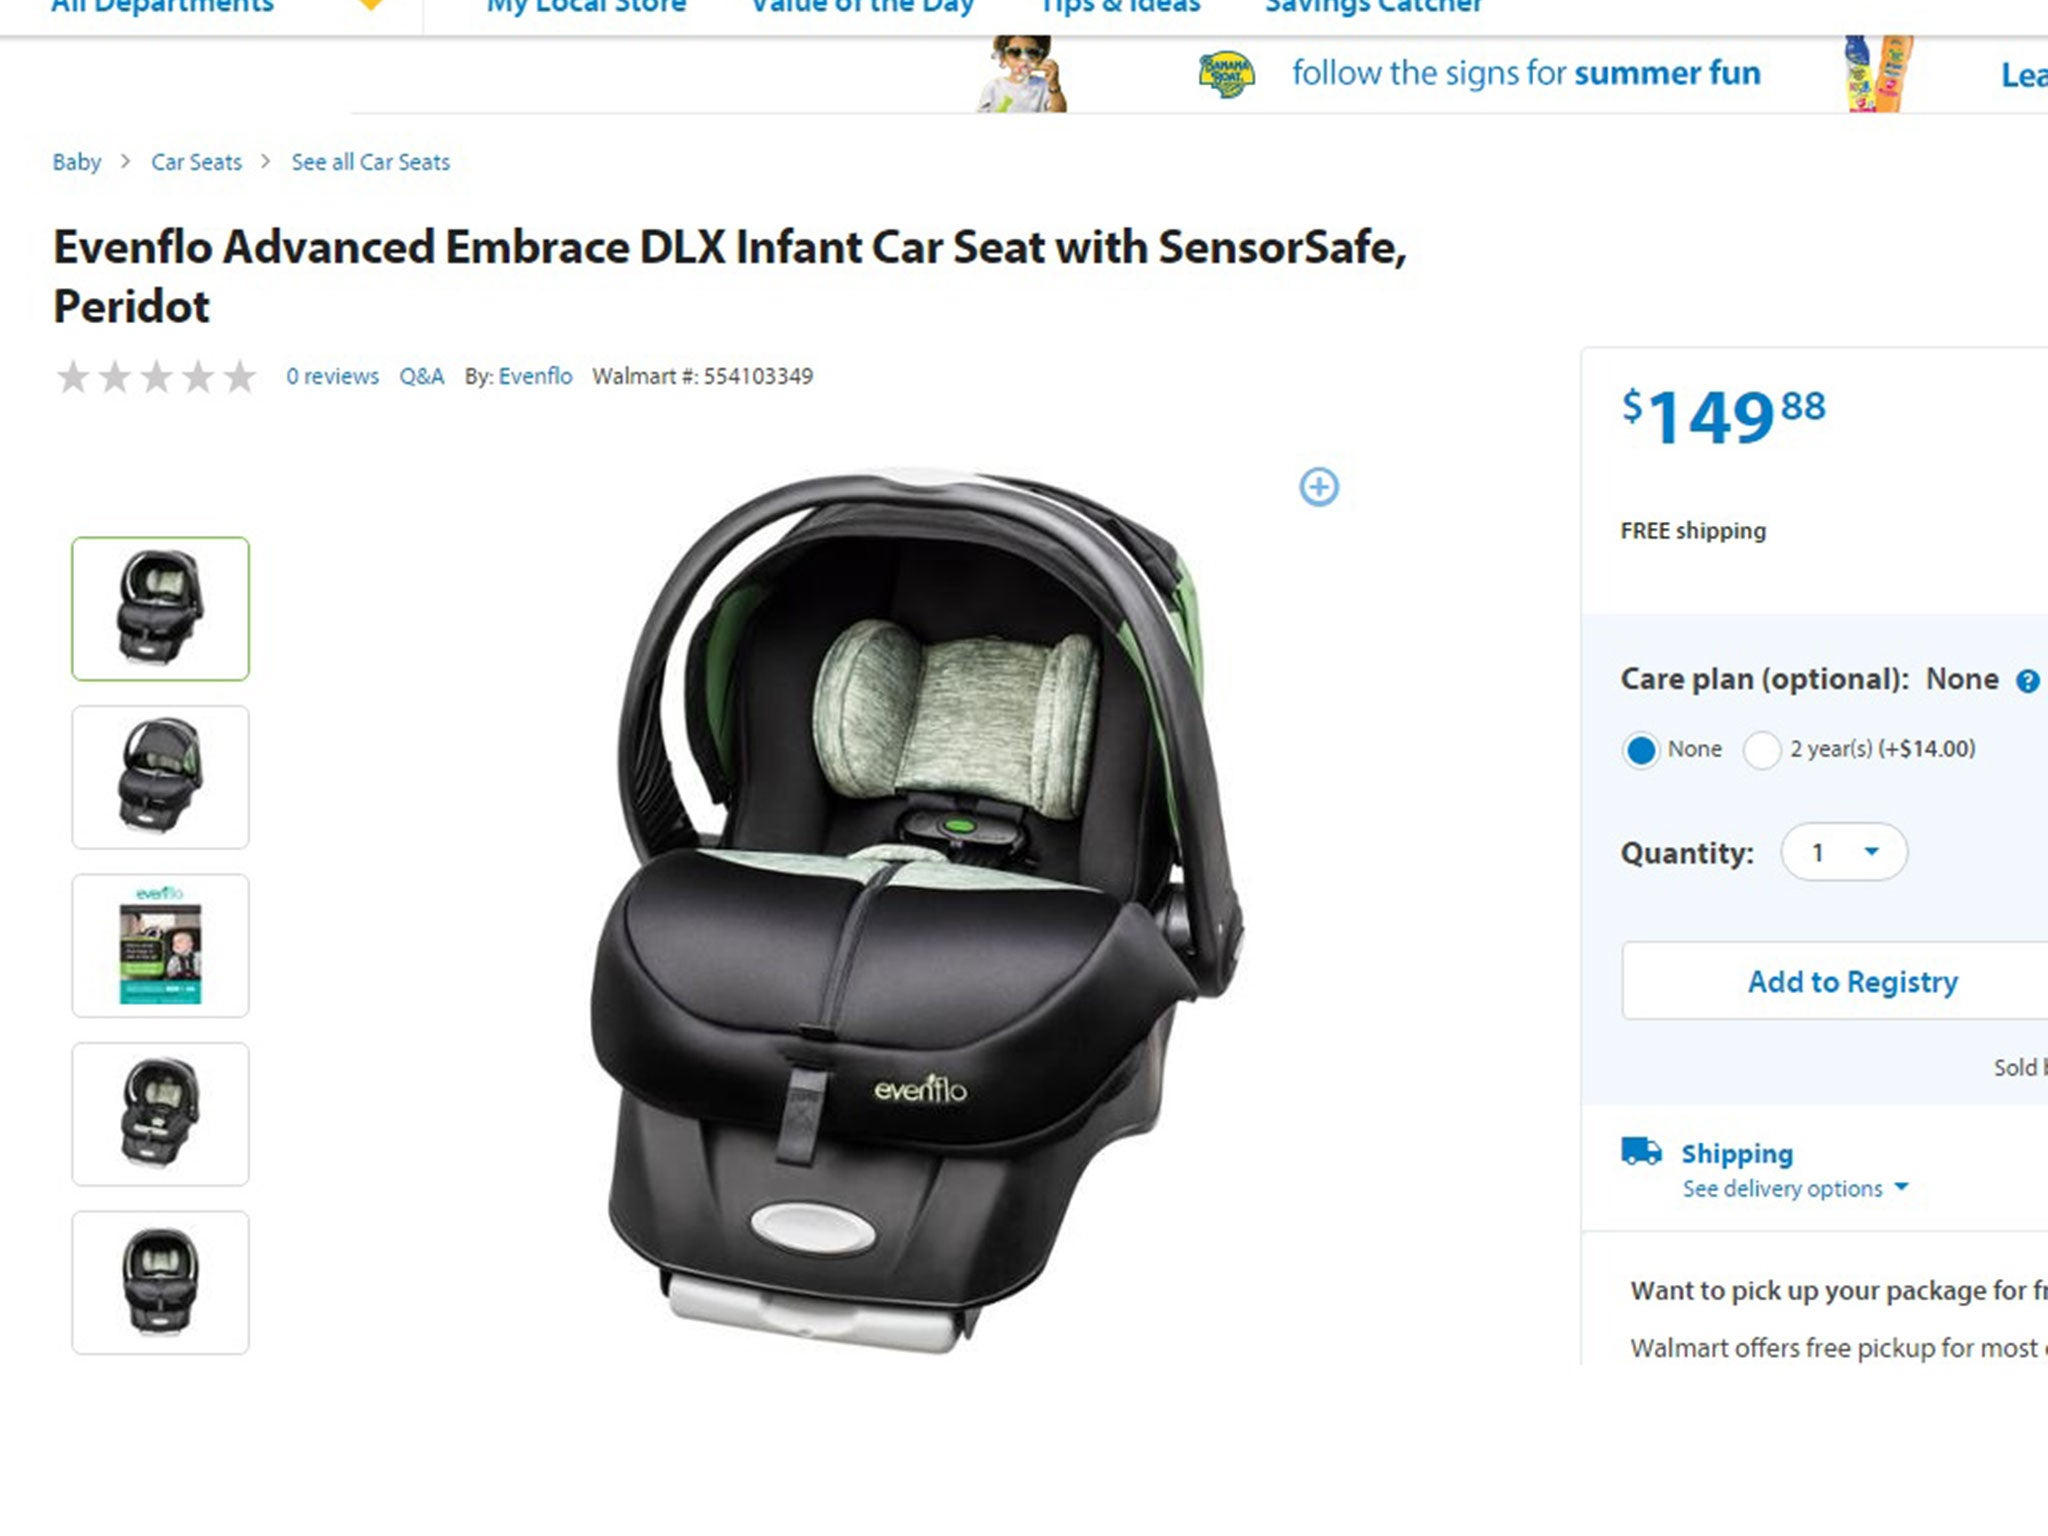 Walmart Is Selling Baby Seats With Sensors Which Alert Parents When They Leave A Child Behind